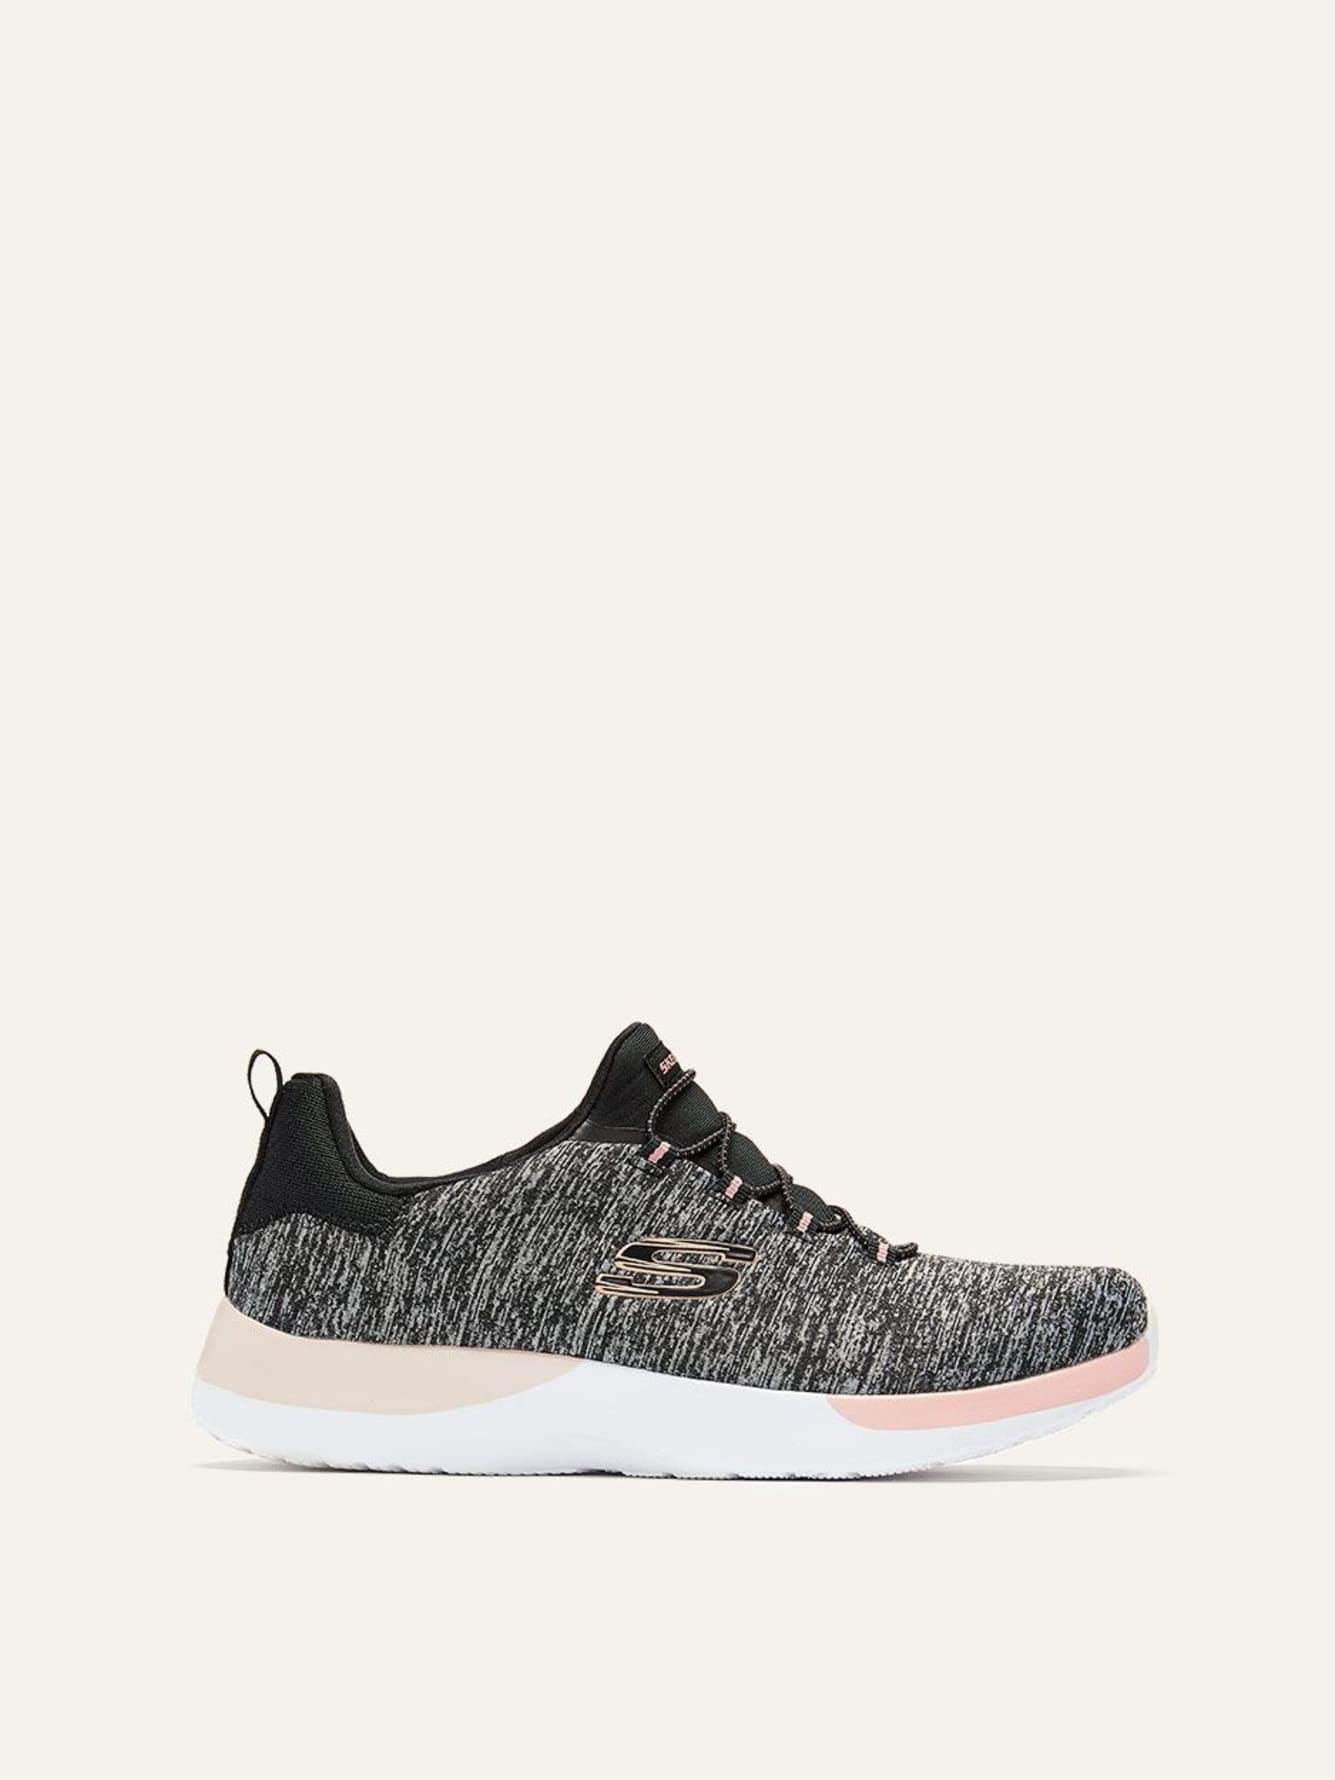 Skechers Dynamight, Break-Through - Wide Width Heathered Sneakers